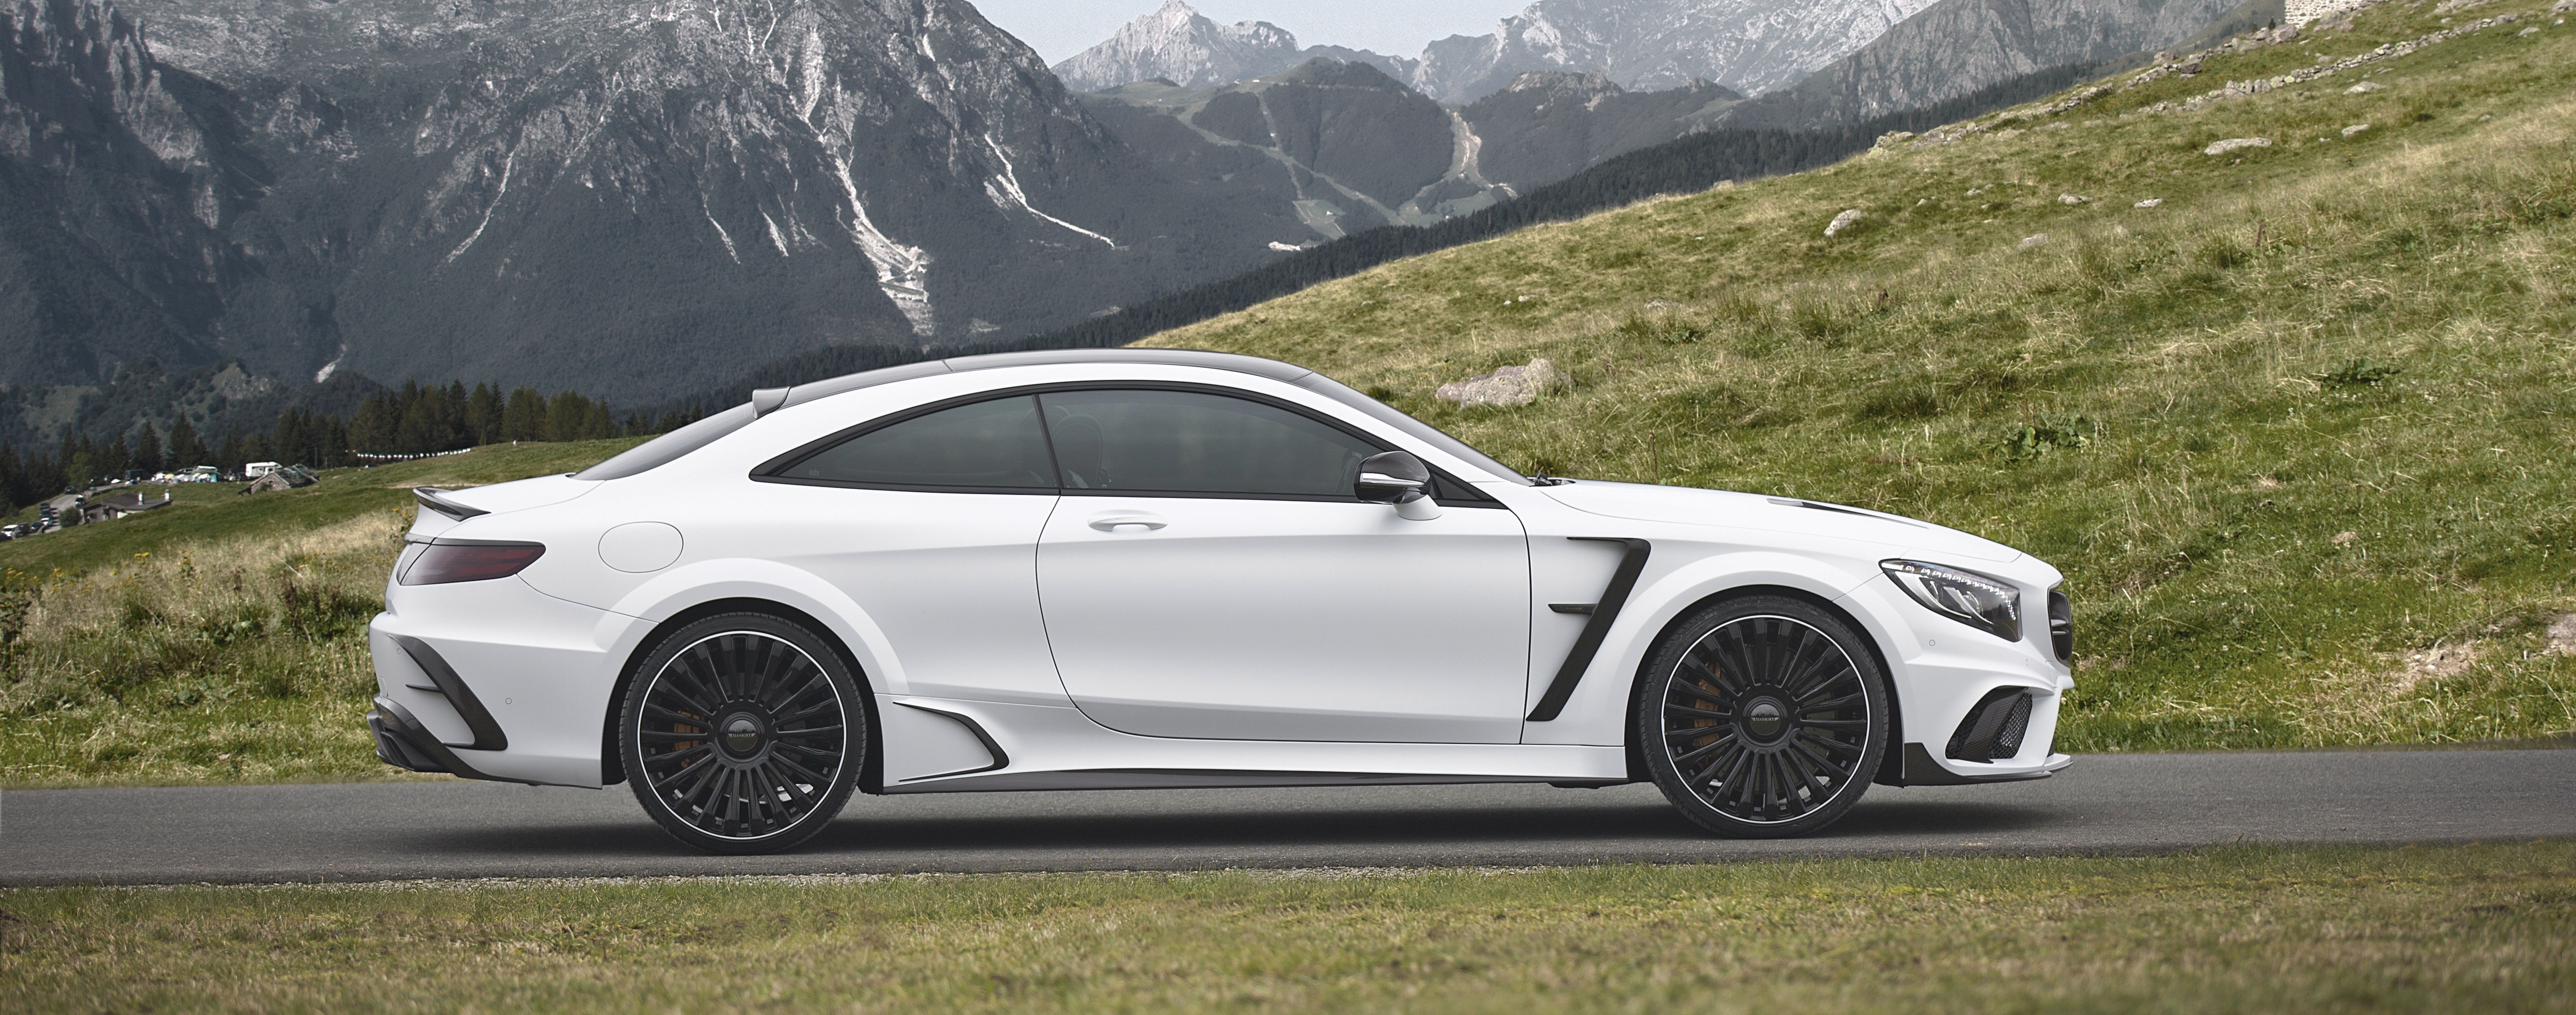 mansory_mercedes-benz_s-coupe_06.jpg